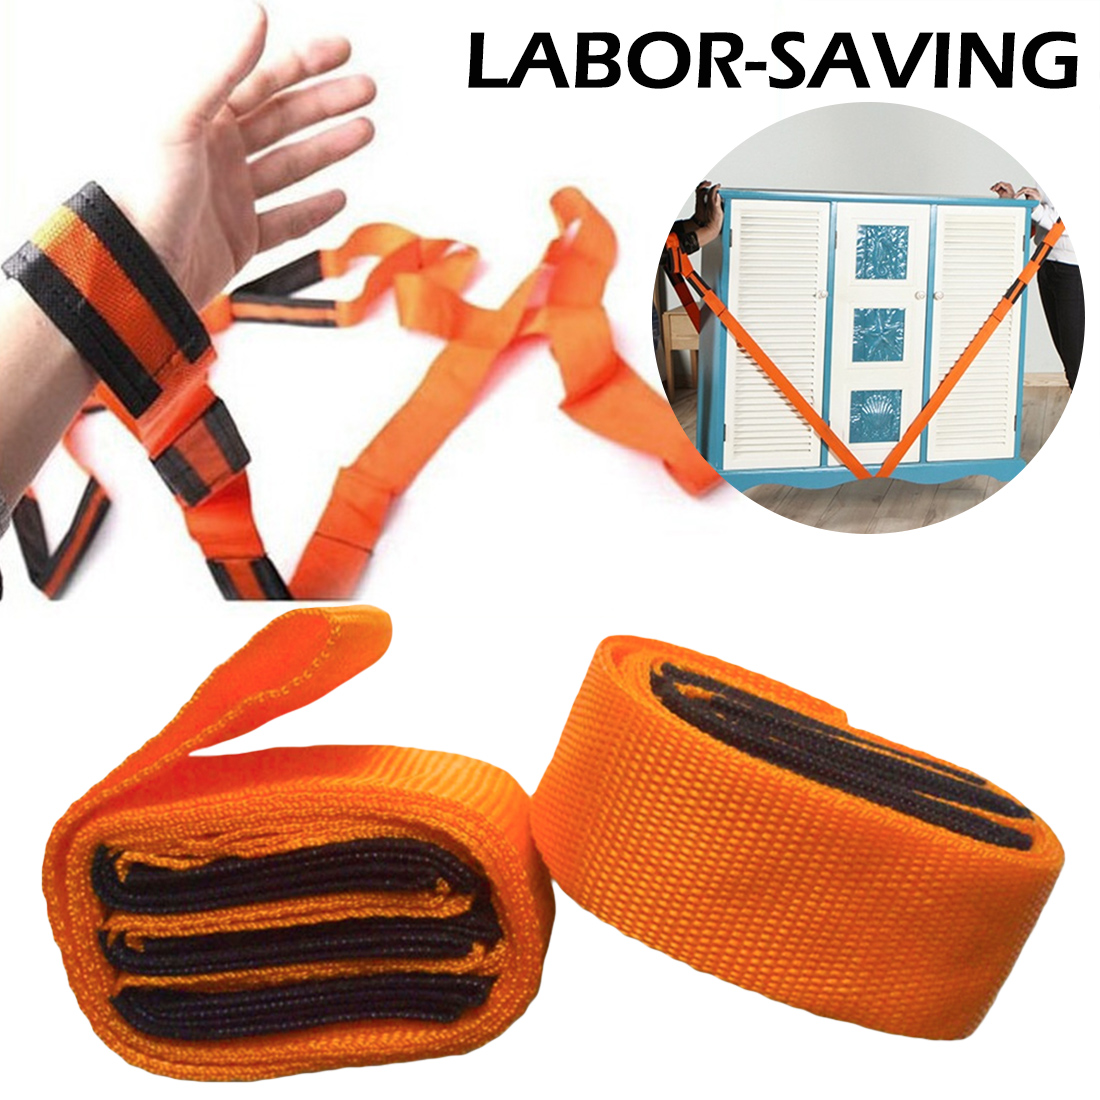 2pcs Forearm Forklift Lifting Moving Strap Transport Belt Wrist Straps Furniture For Home Move House Convenient Tools